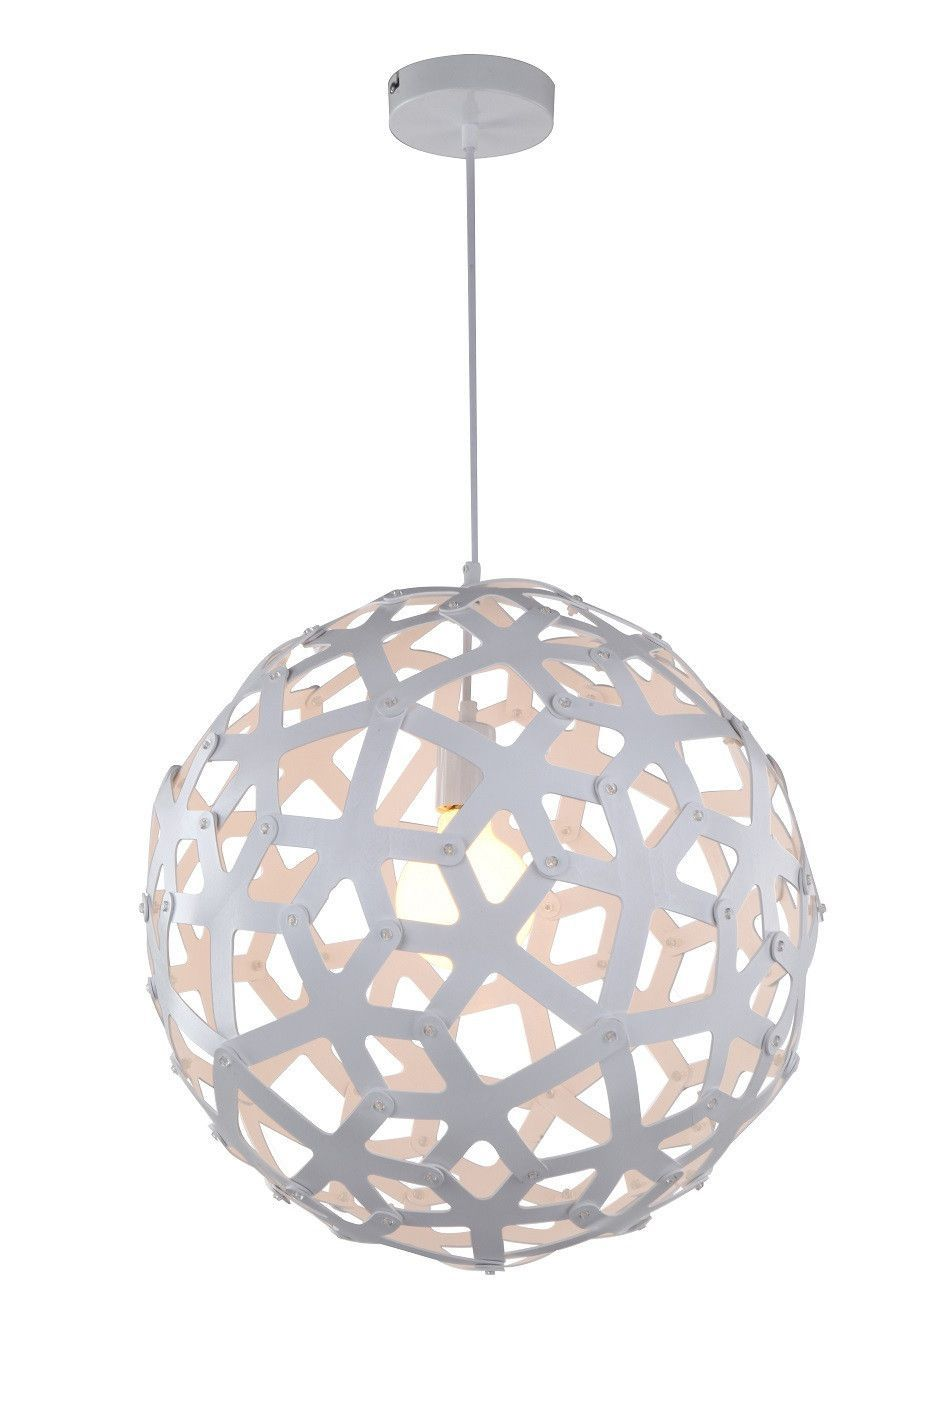 Large Wood Sphere Light Fixture White With Bulb Turned